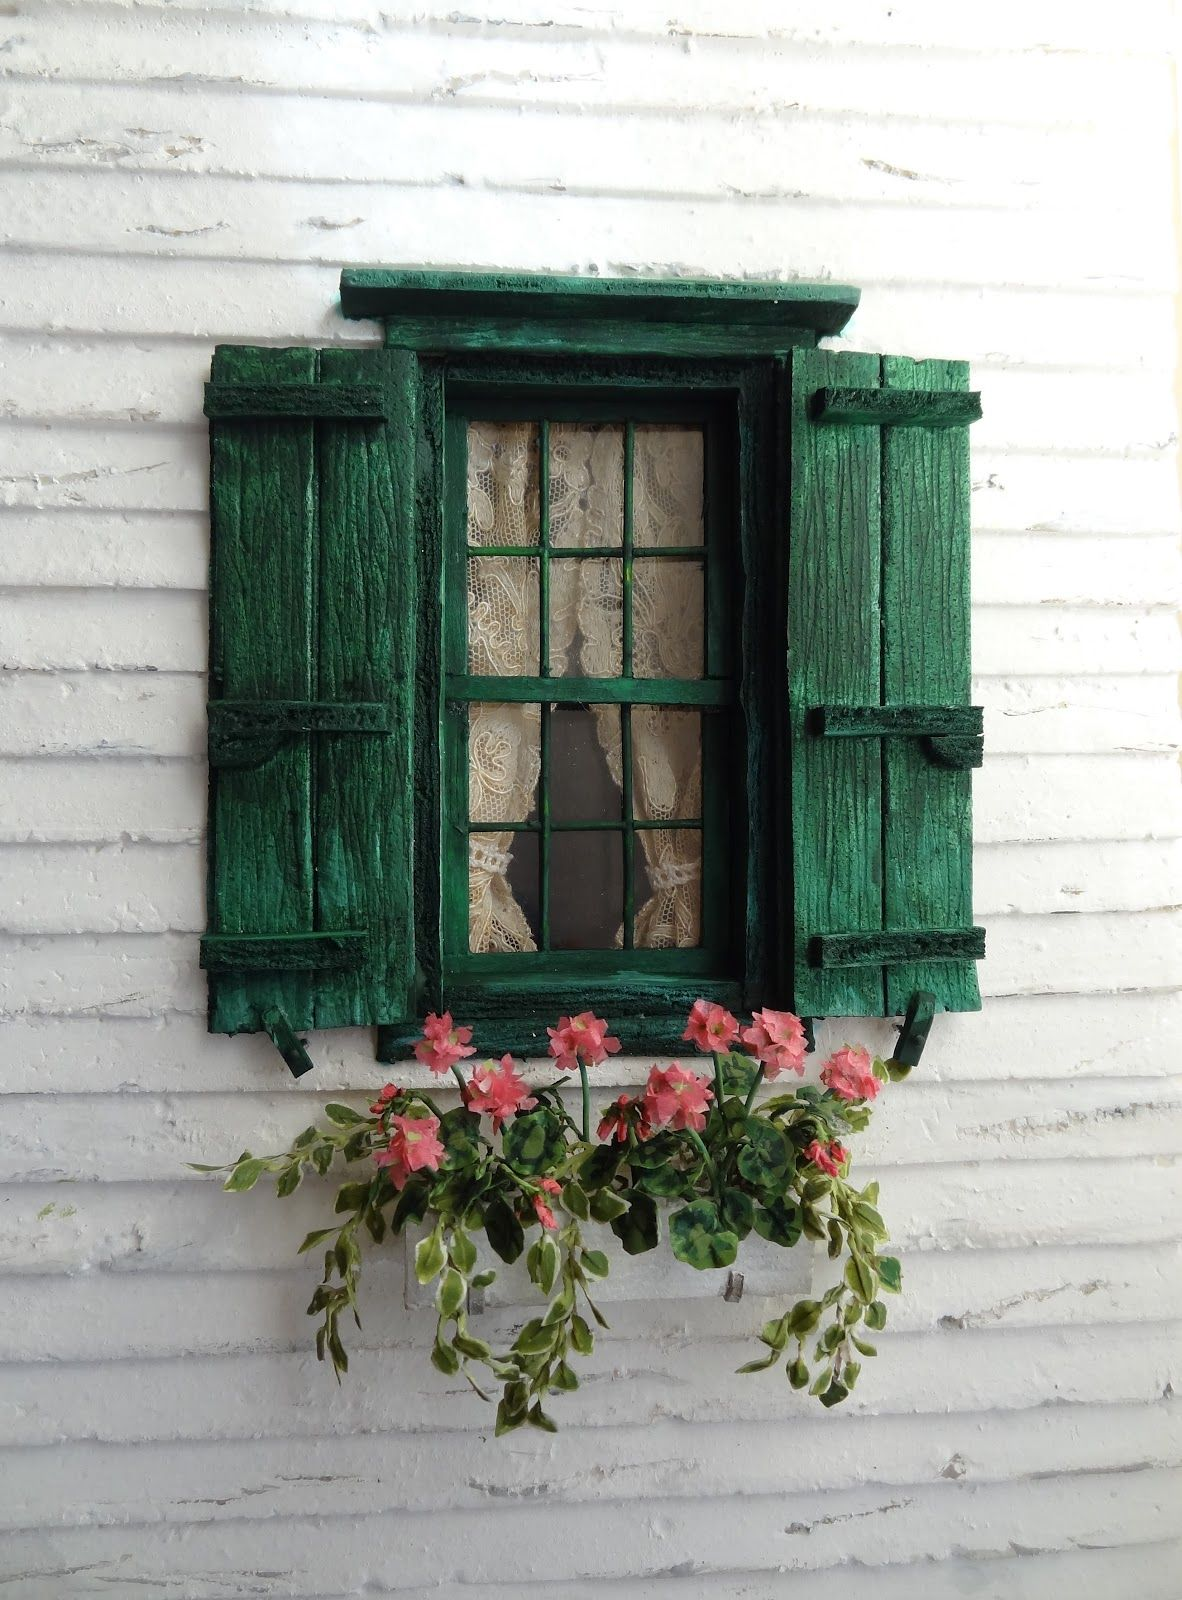 Cute little window, I love the shutters and flower box